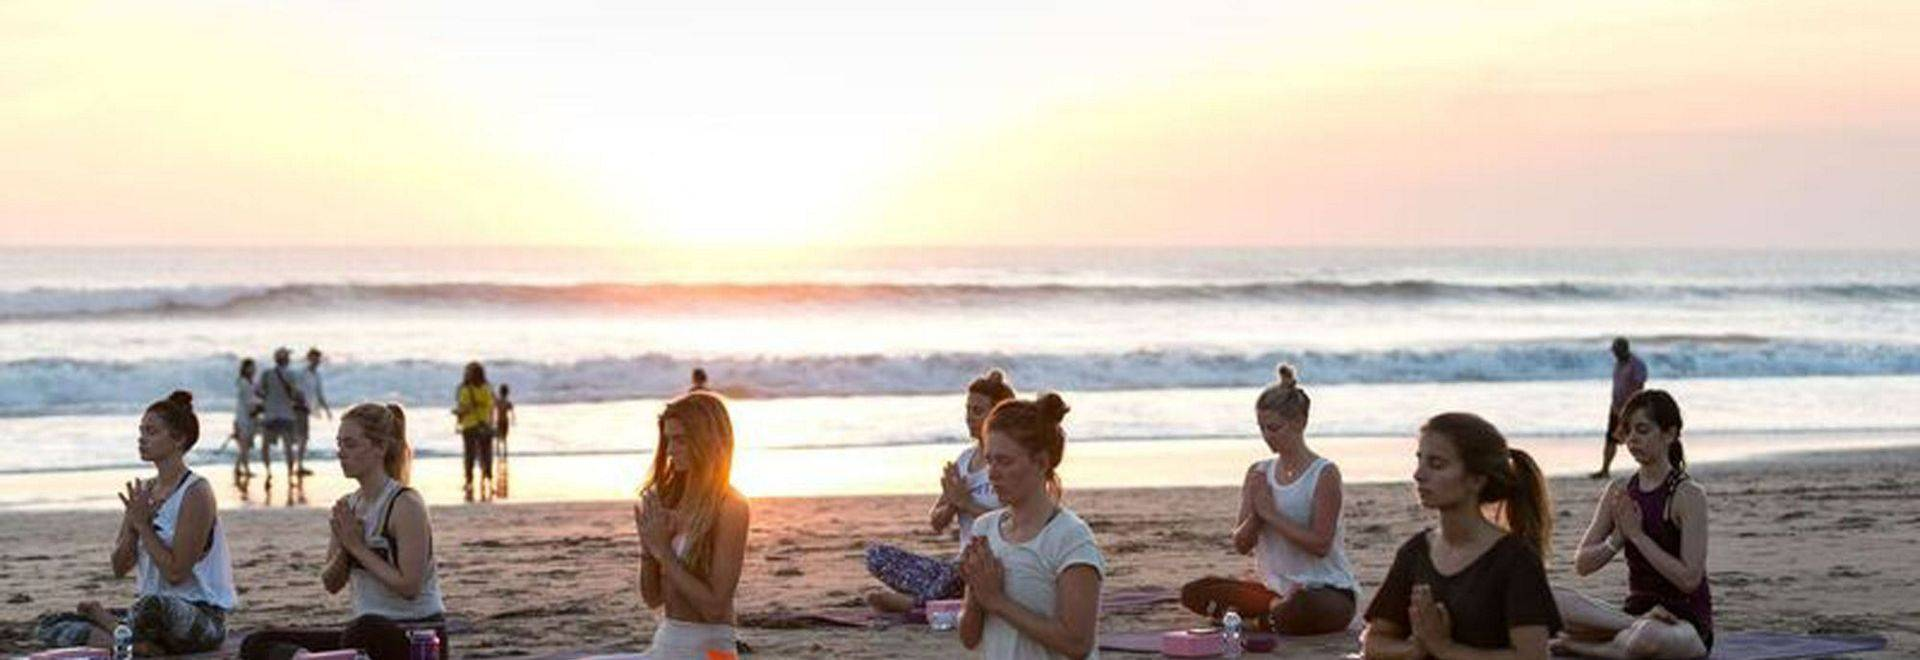 Ocean-soul-retreat-beach-yoga.jpg